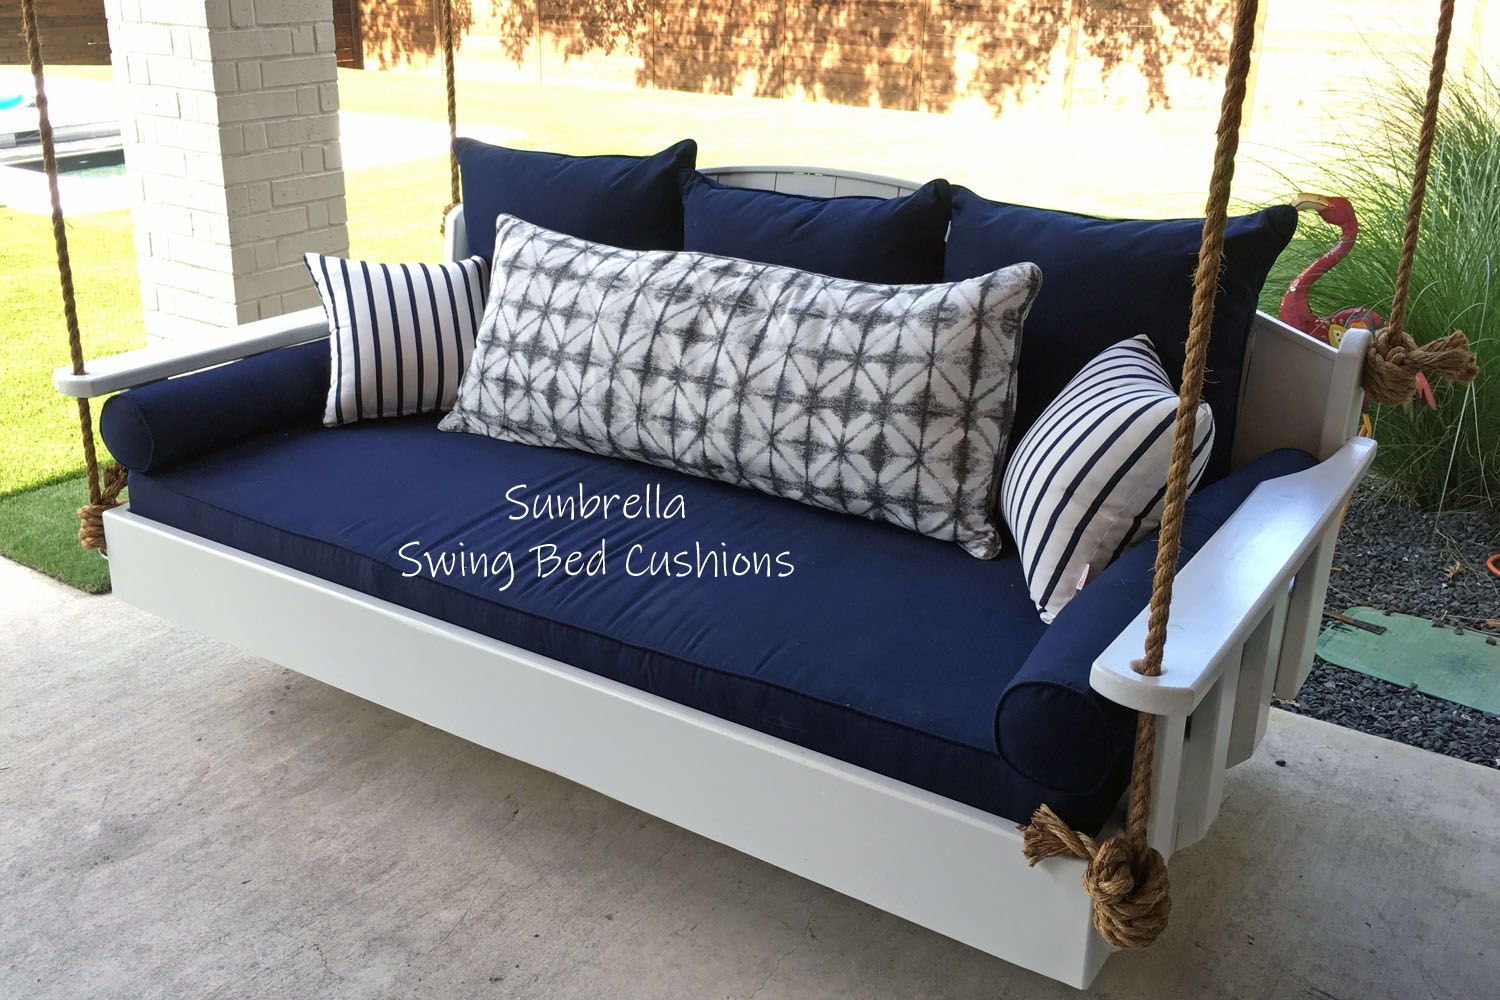 Sunbrella Outdoor Daybed Cushion Set Bolsters Back Pillows